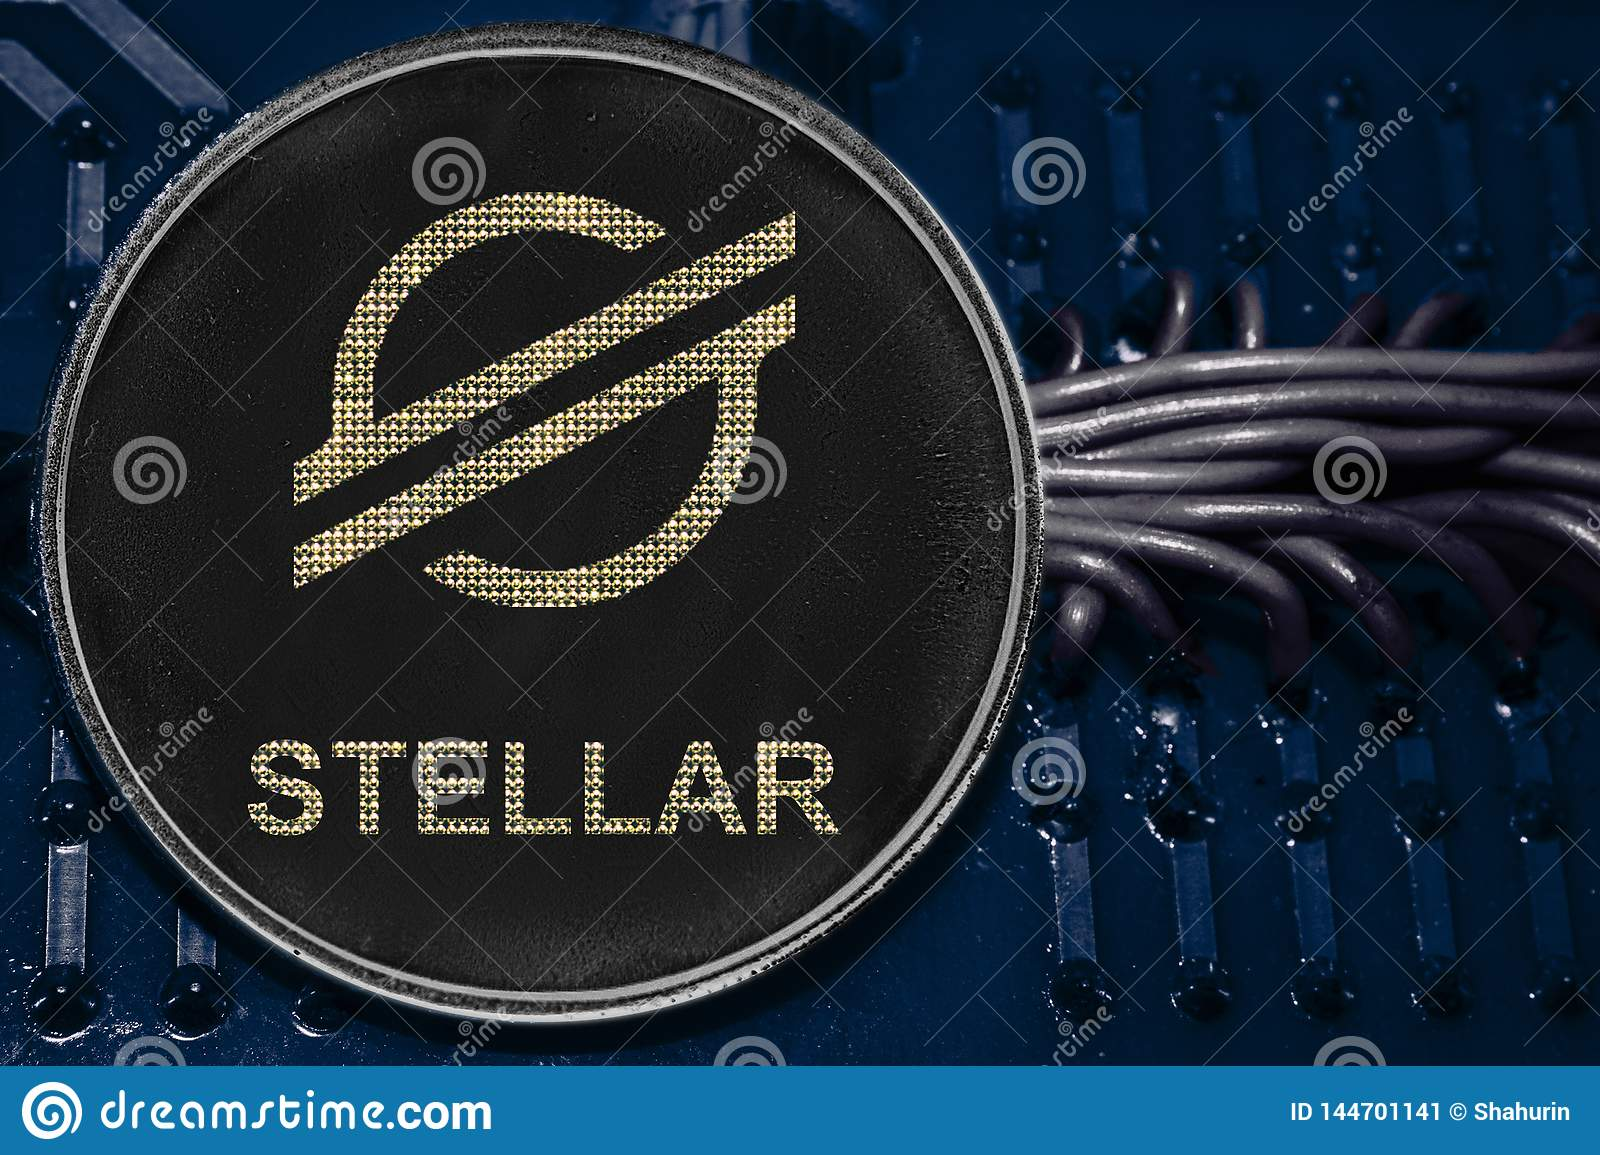 stellar xlm cryptocurrency price